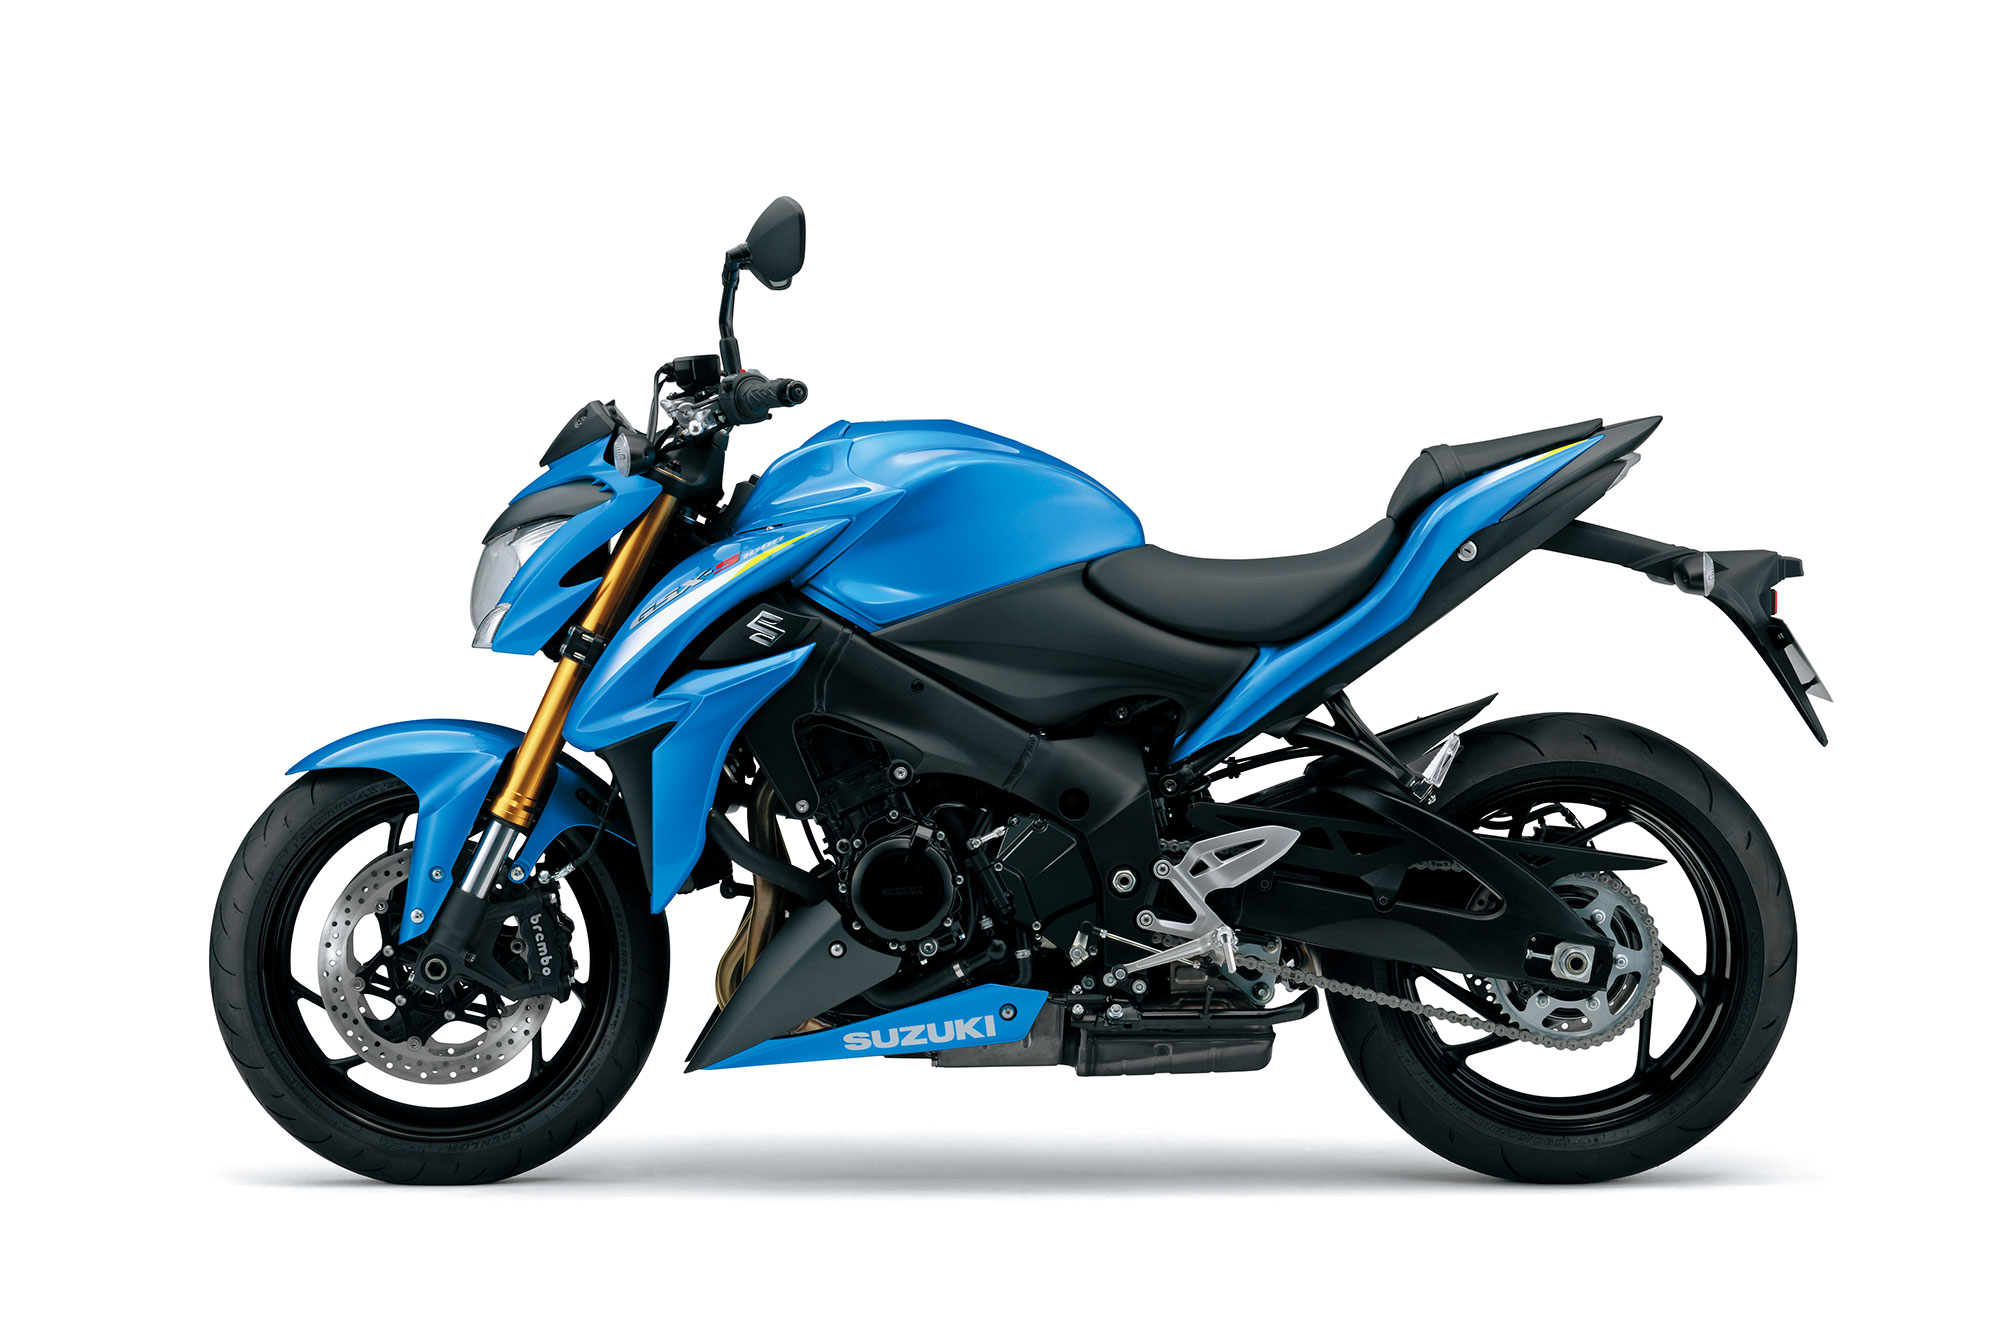 suzuki gsx s1000 specs 2014 2015 2016 autoevolution. Black Bedroom Furniture Sets. Home Design Ideas